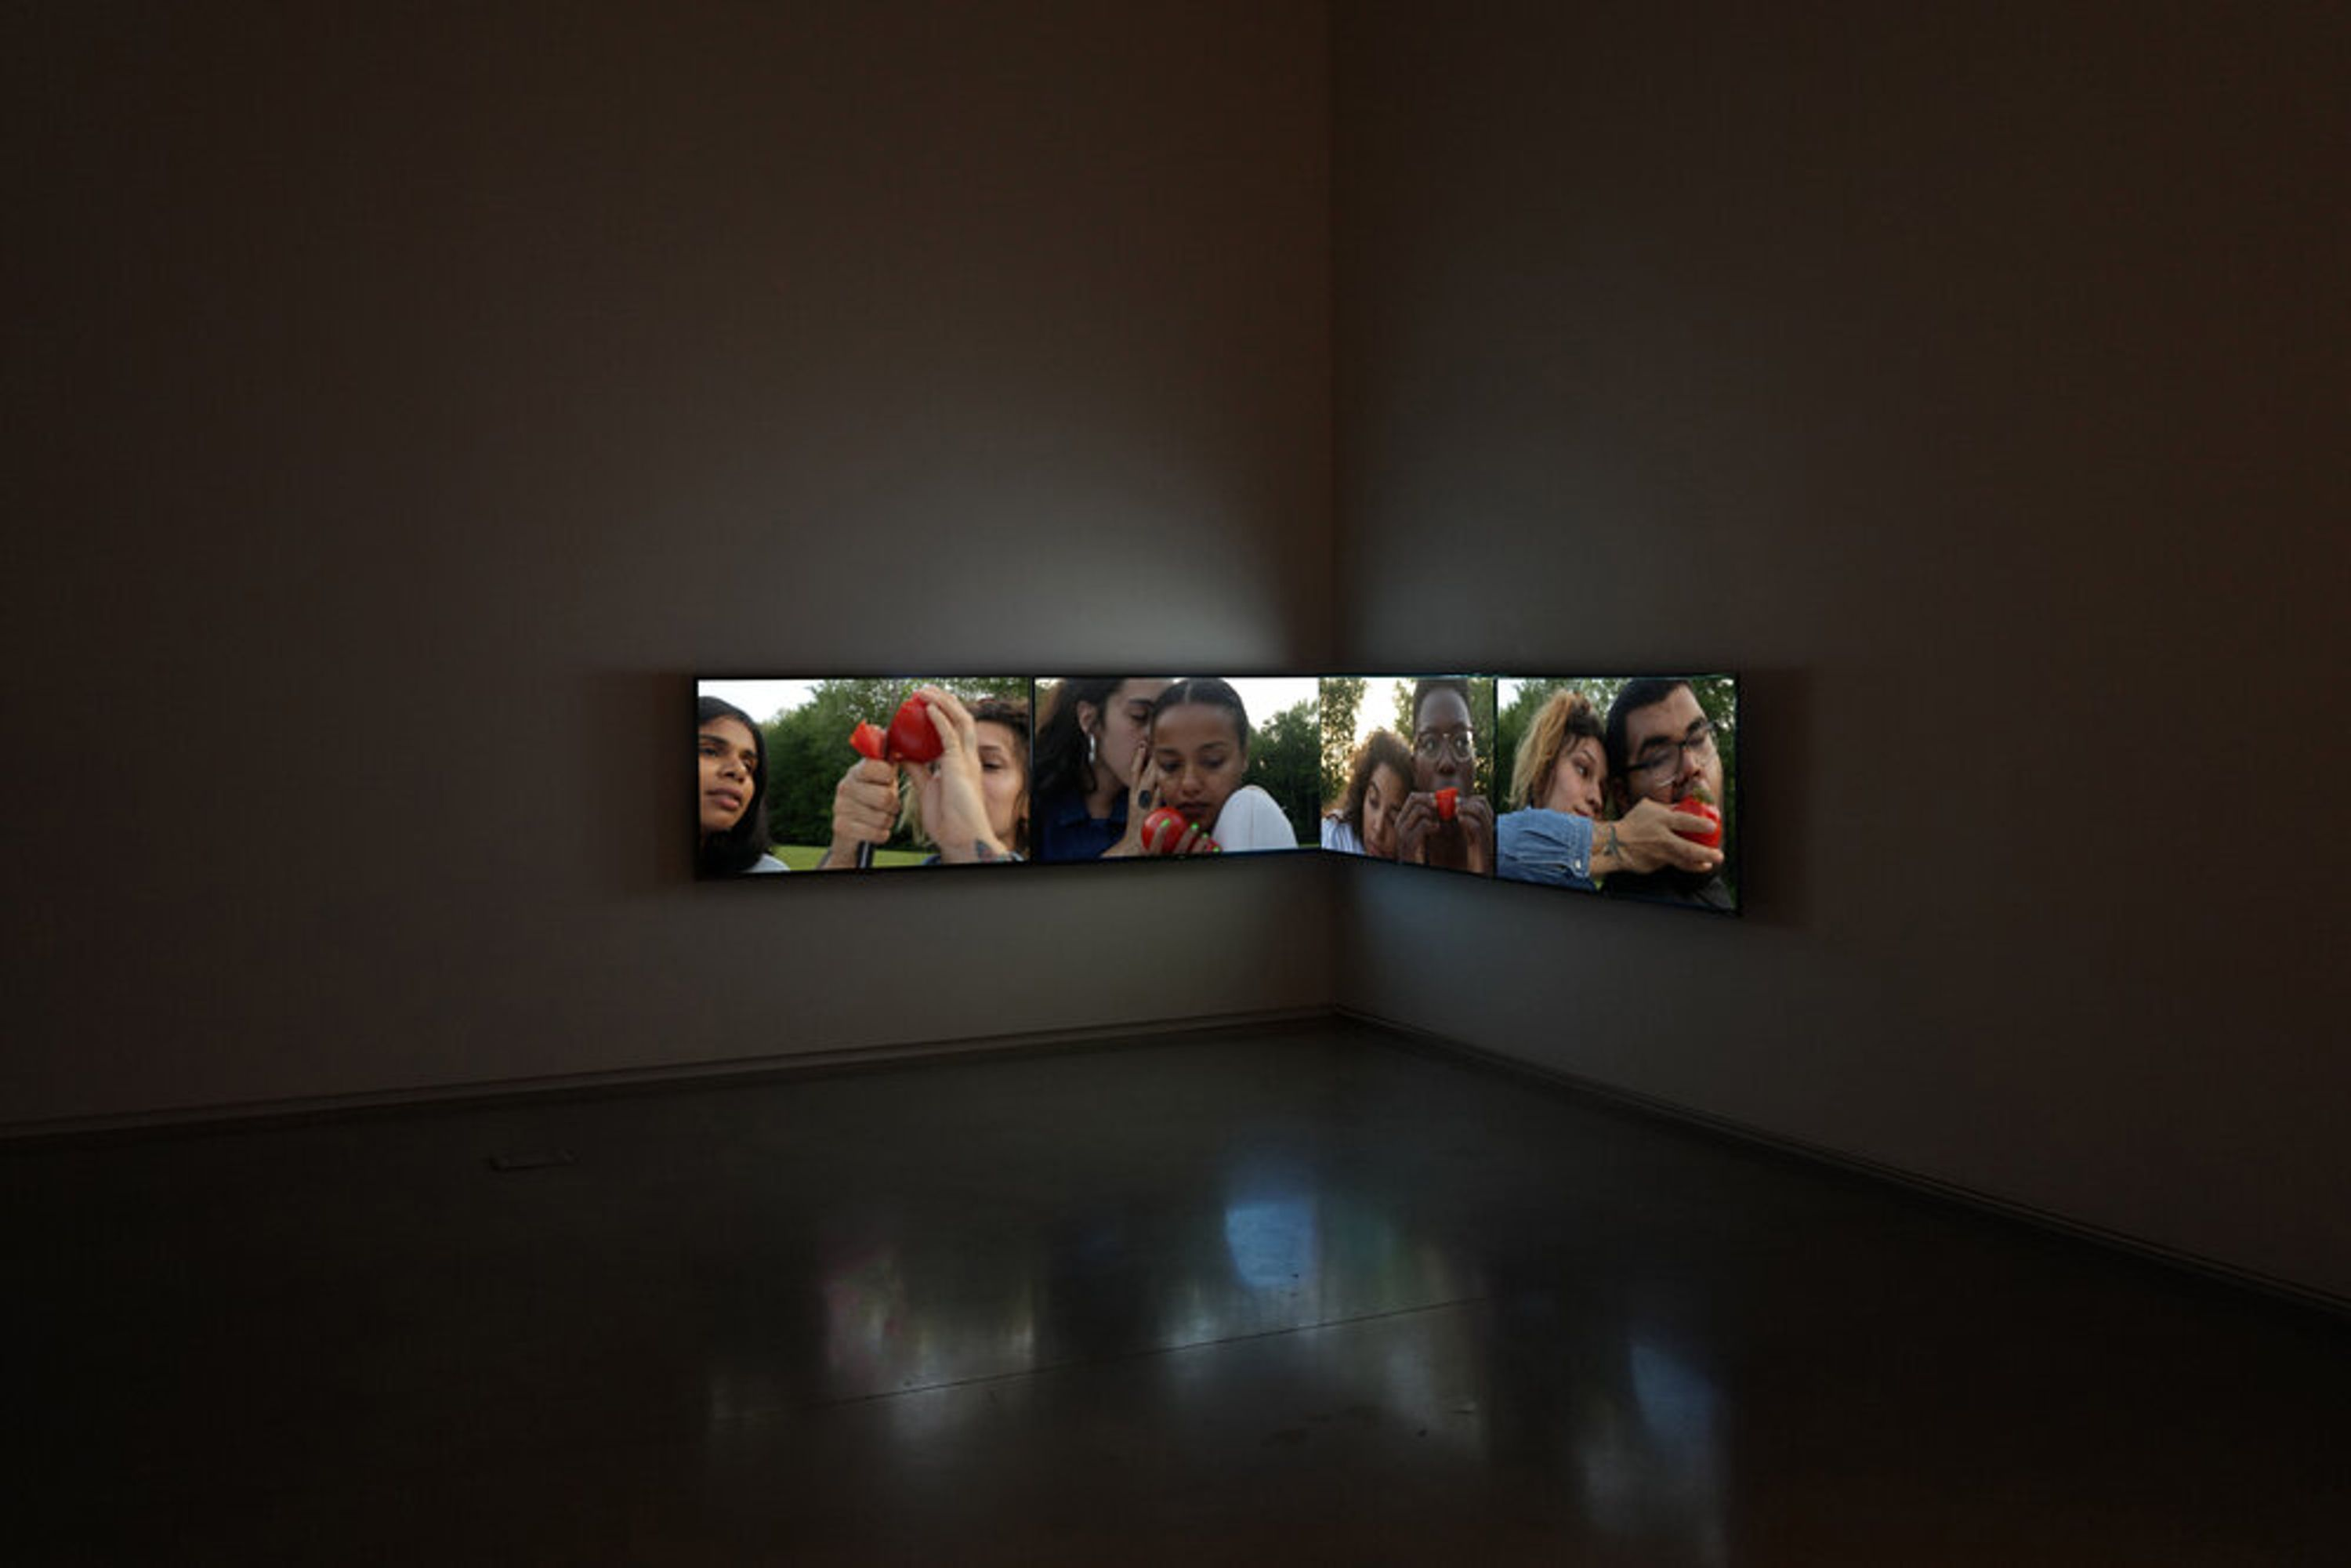 Installation view of Tomatoes (Skowhegan, ME) (2020), from the exhibition from the exhibition Unnamed for Decades, Center for Maine Contemporary Art.